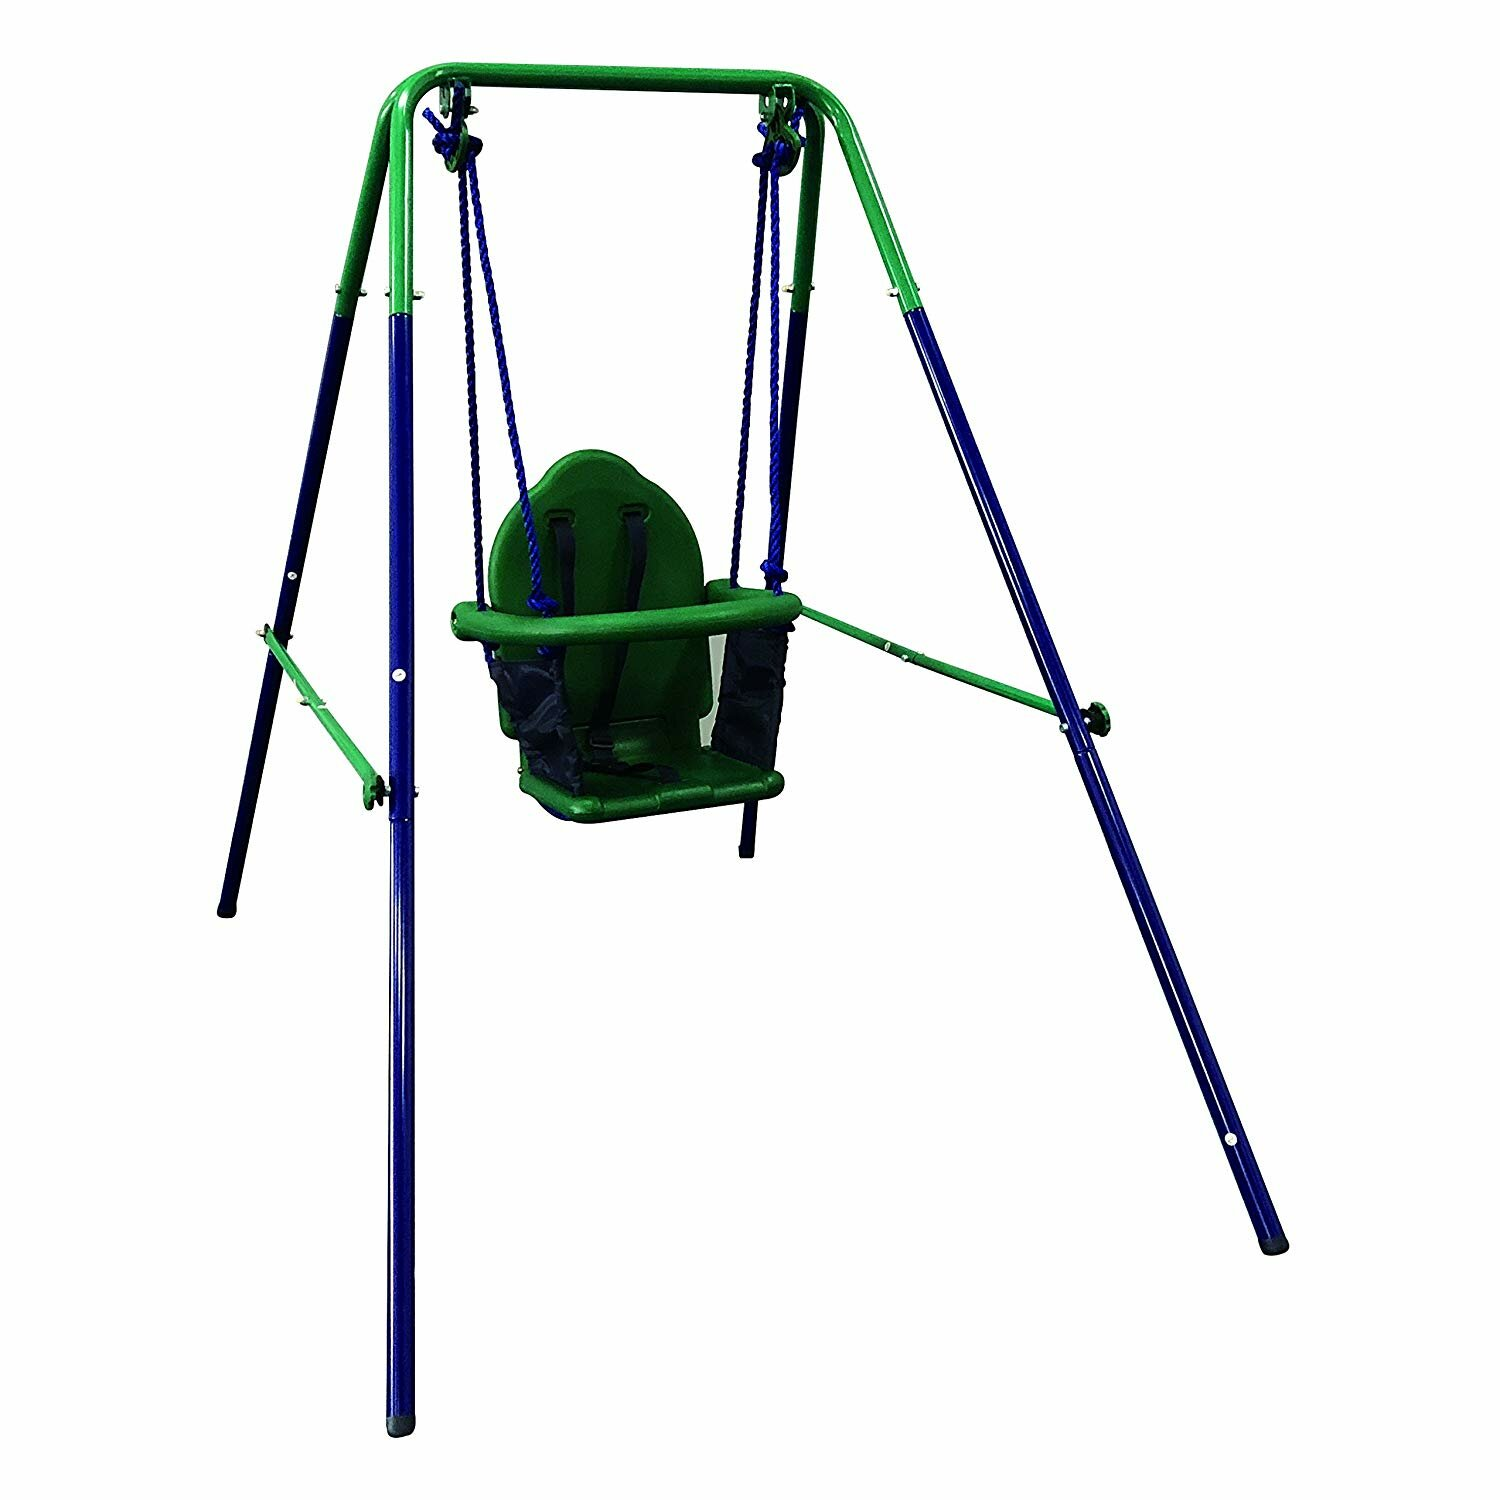 Outdoor Baby Swing >> Toddler Baby Swing Portable Indoor Outdoor Folding Safety Chair Playground